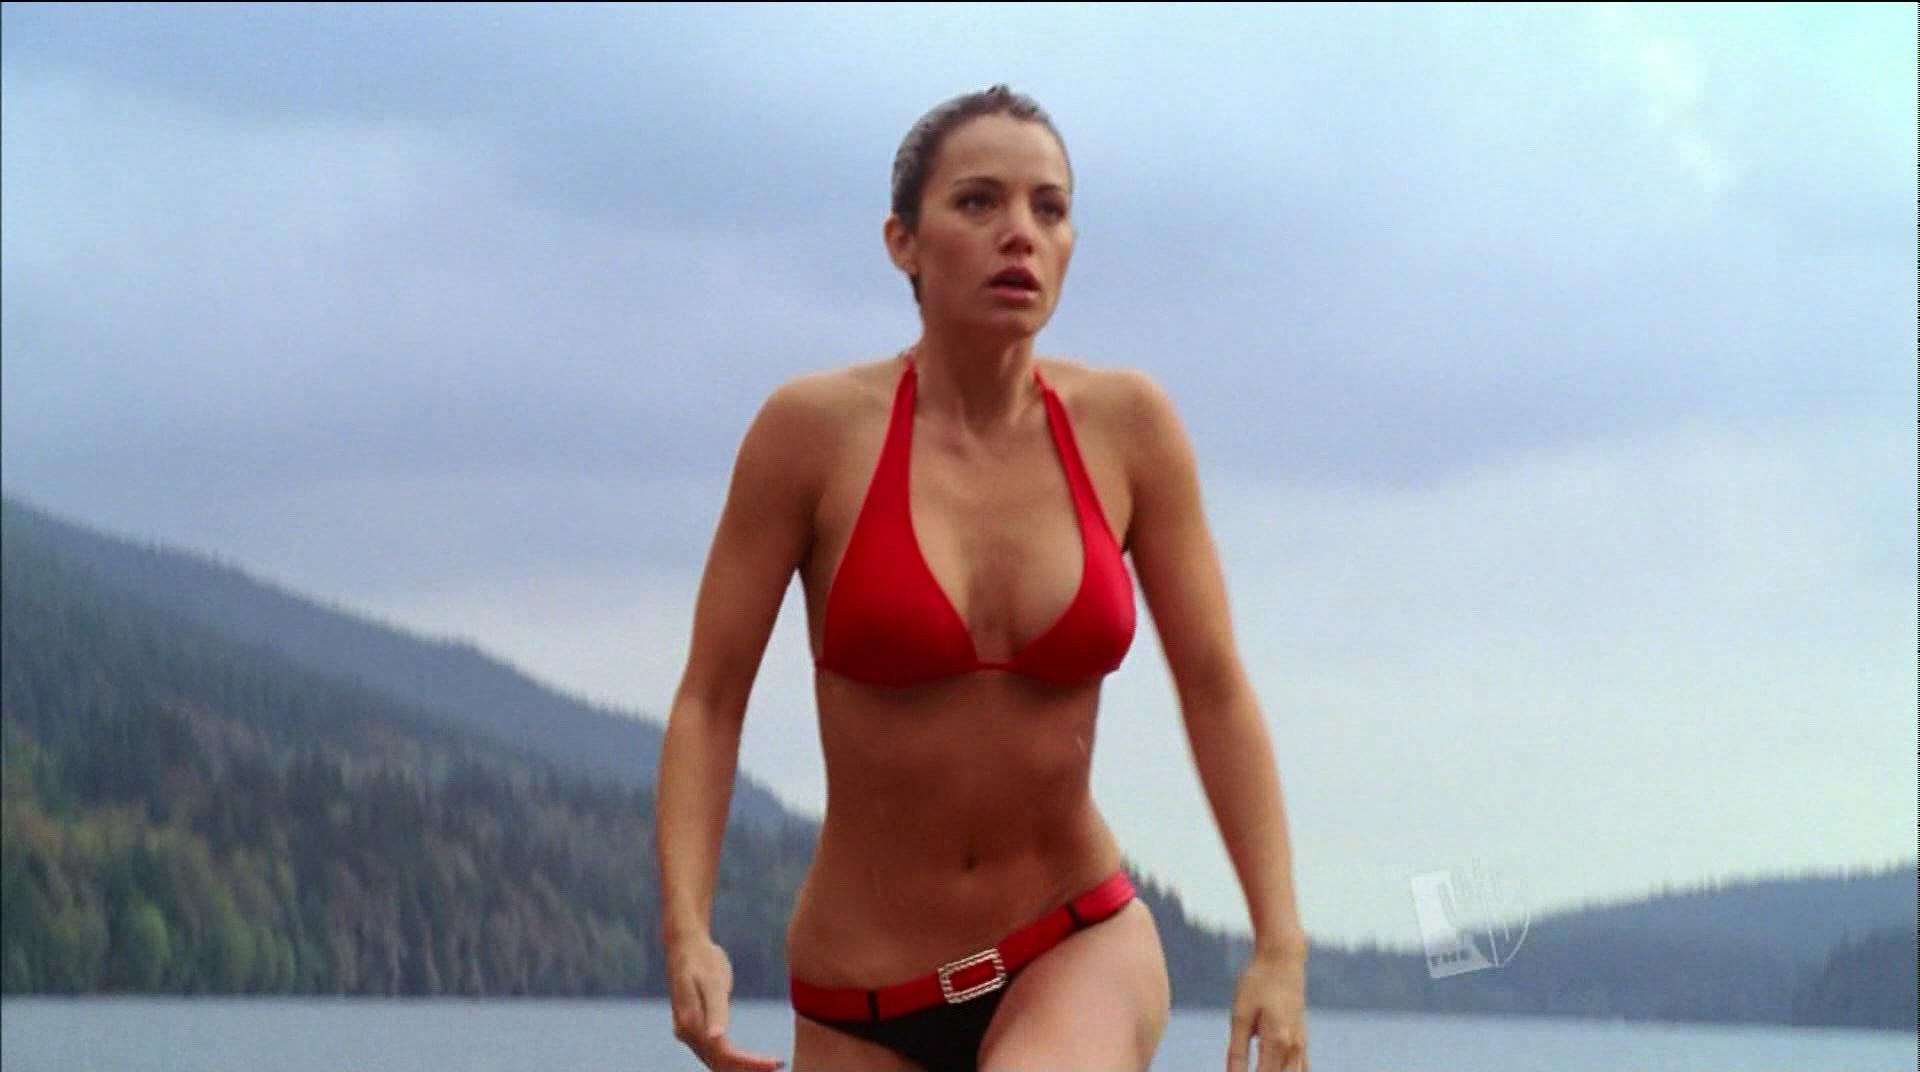 Understand Erica durance bikini thanks. You